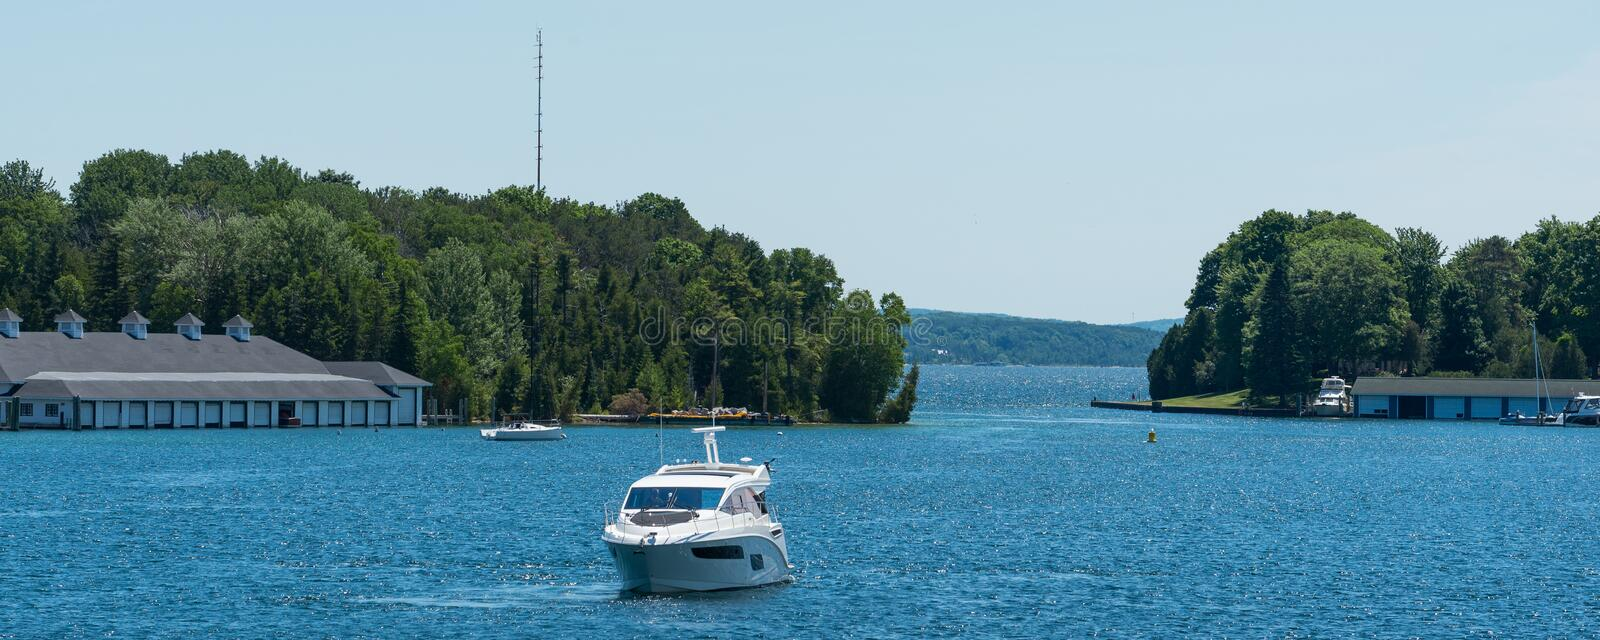 White power boat and boathouses in panoramic format royalty free stock photos